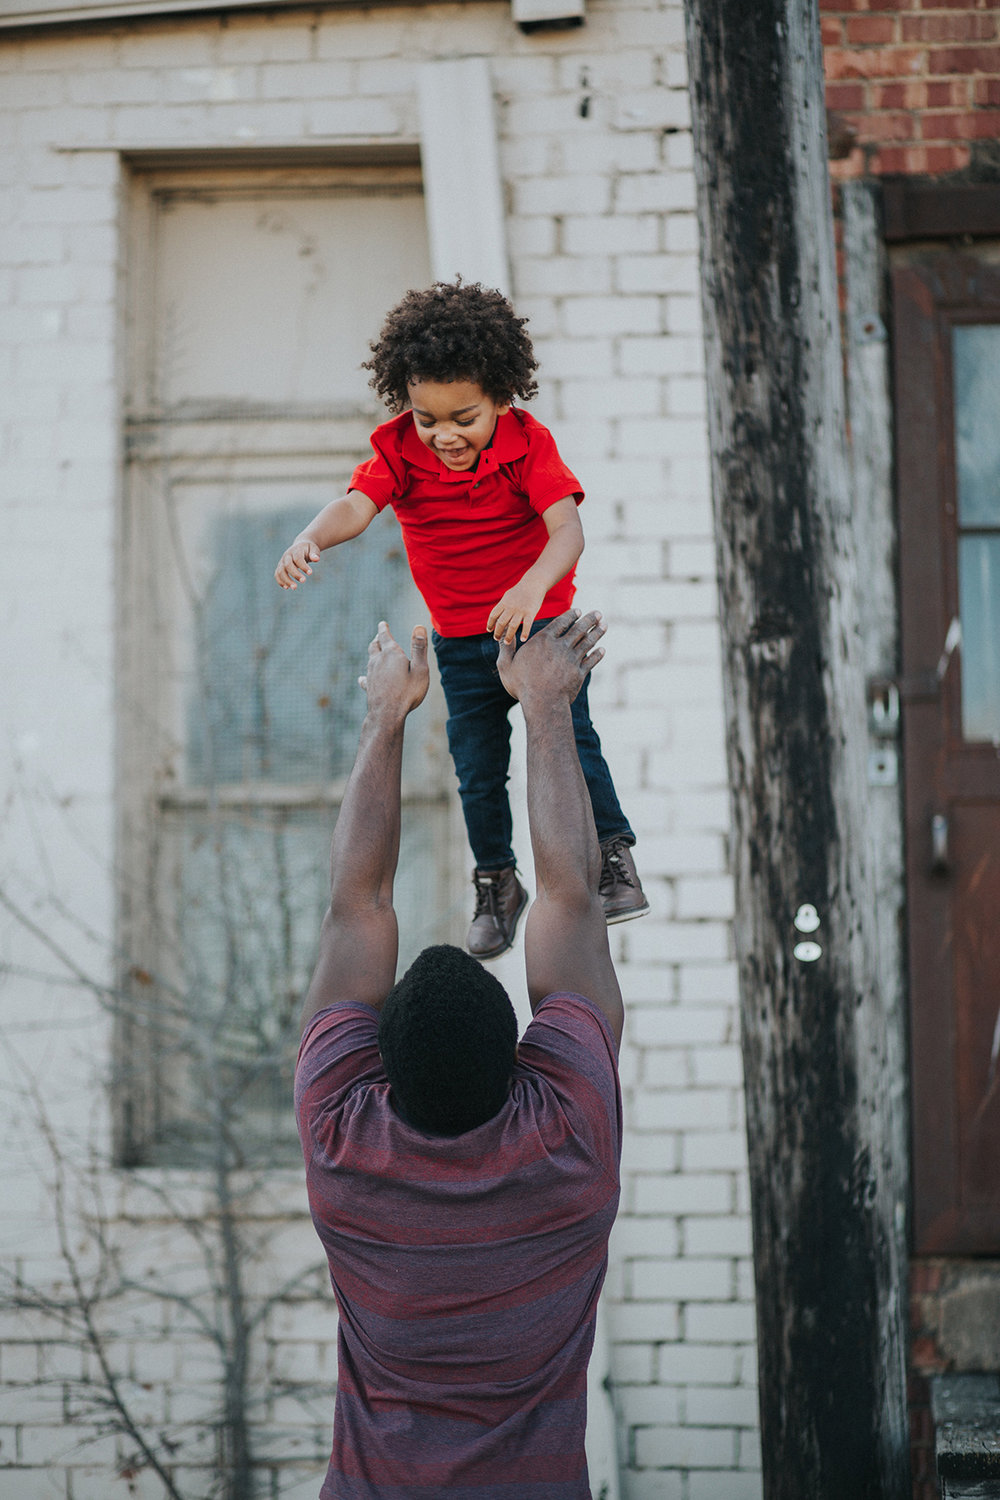 Muscles-Mind-Heart-Black-Father-Playing-With-Child.jpg